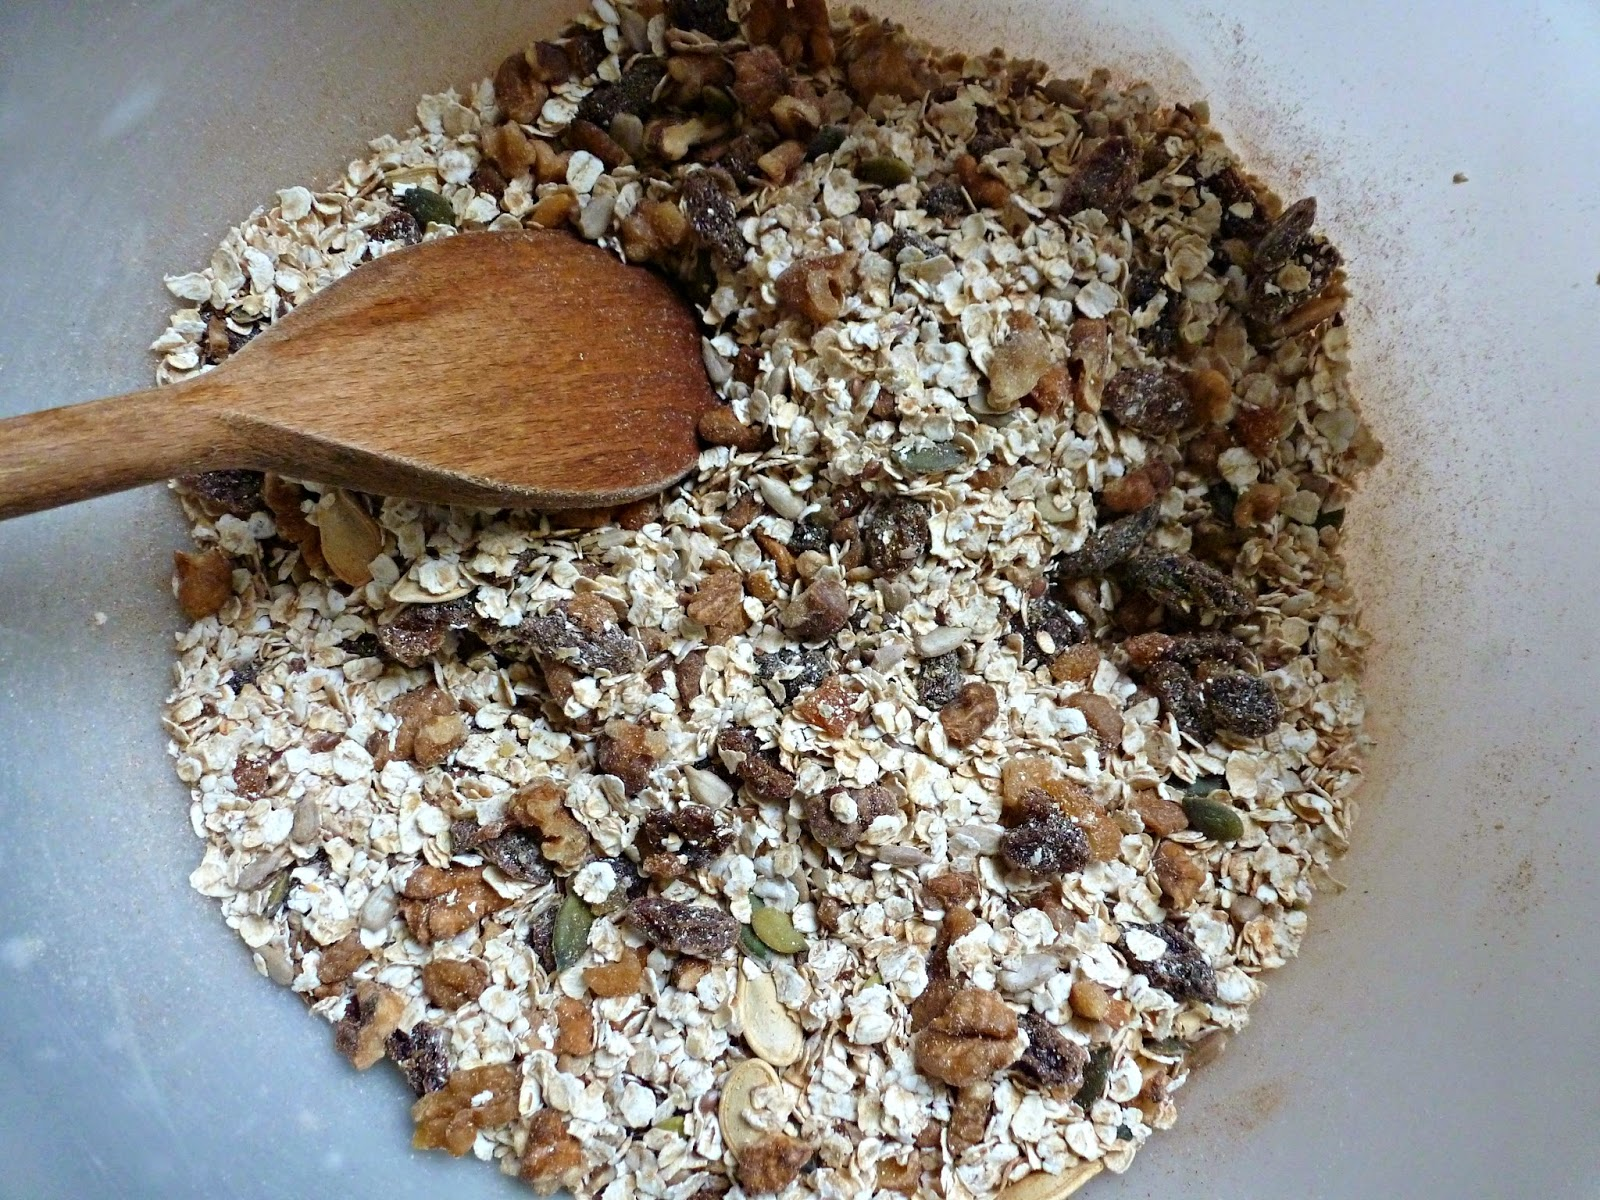 Homemade cinnamon granola recipe. With raisins, seeds and nuts